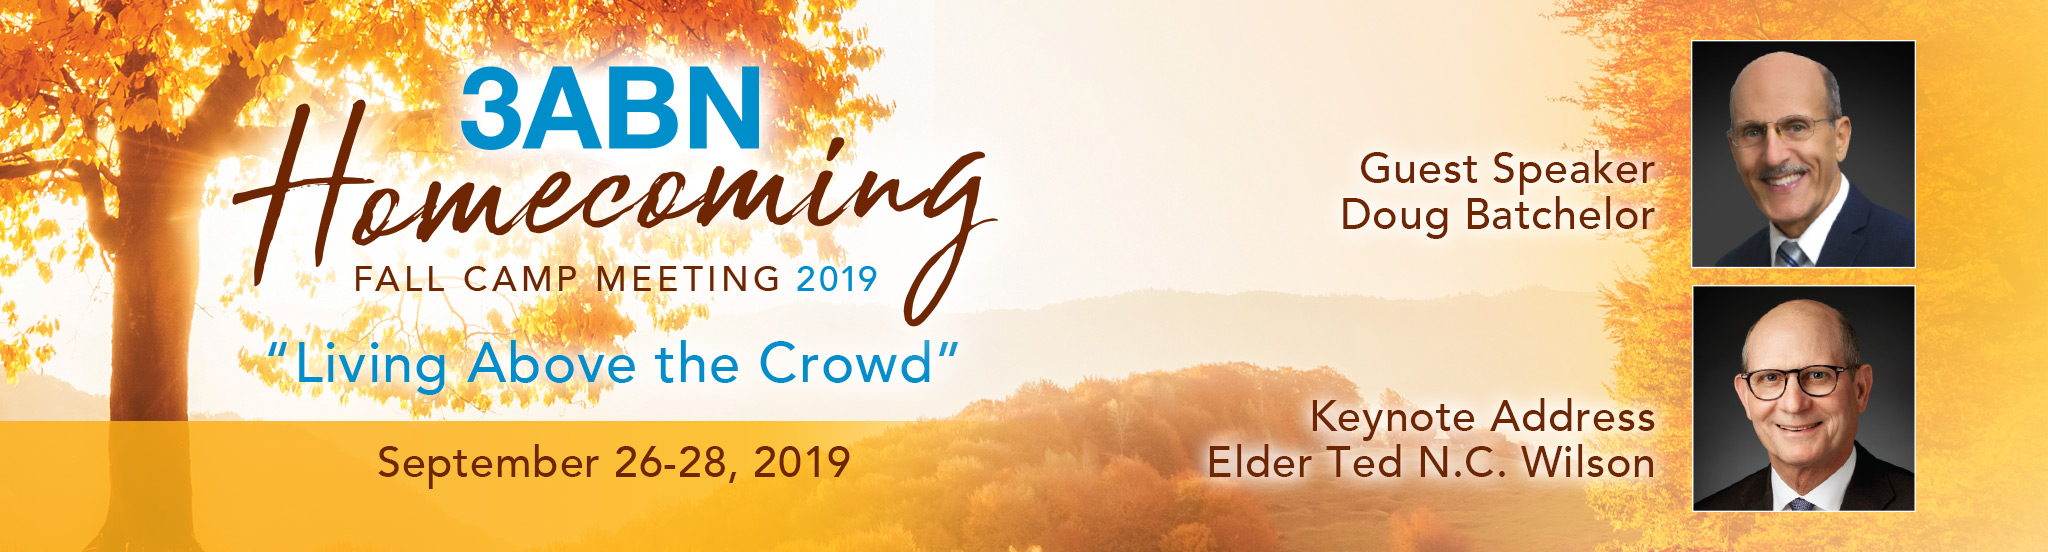 3ABN Spring Camp Meeting 2019